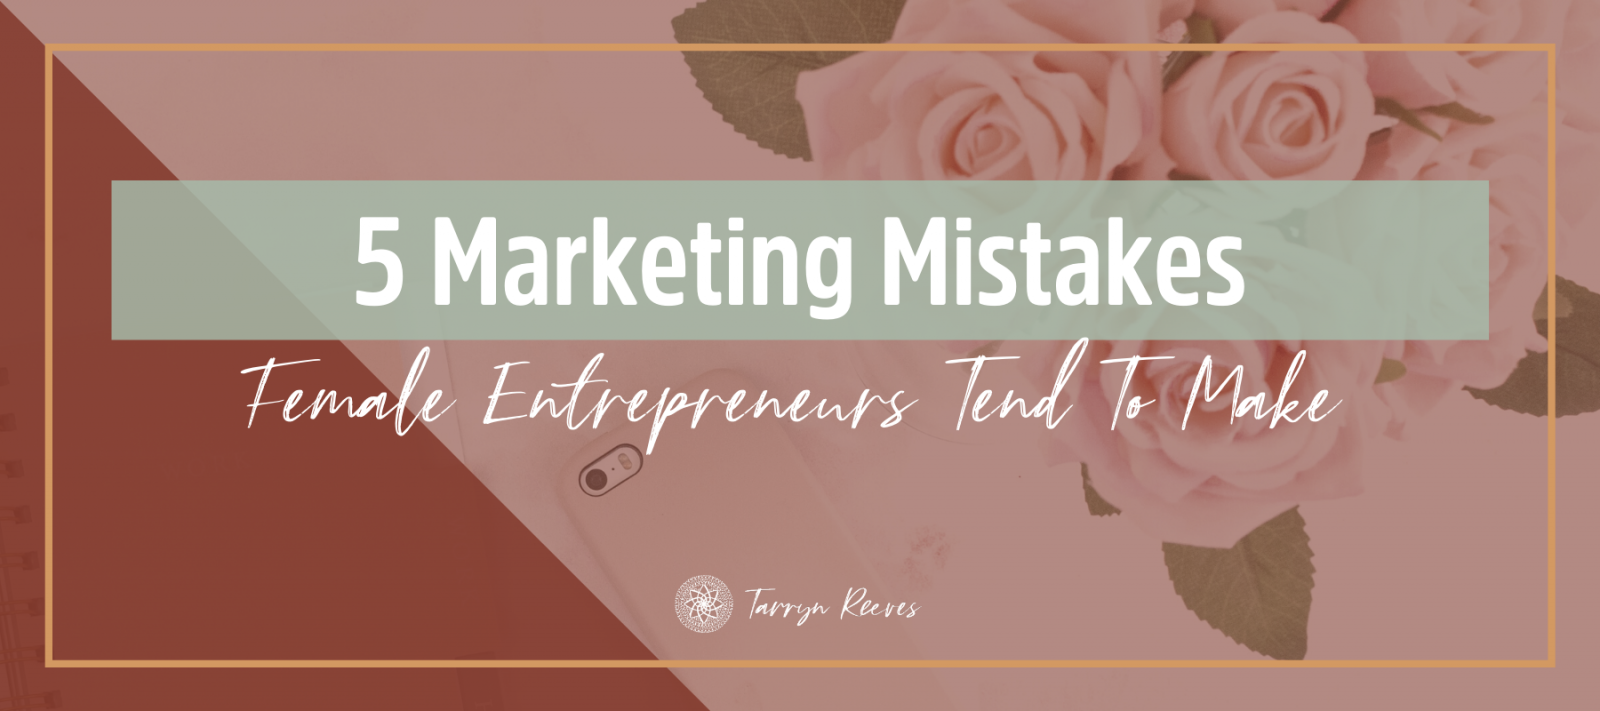 Top 5 Marketing Mistakes Female Entrepreneurs Tend To Make